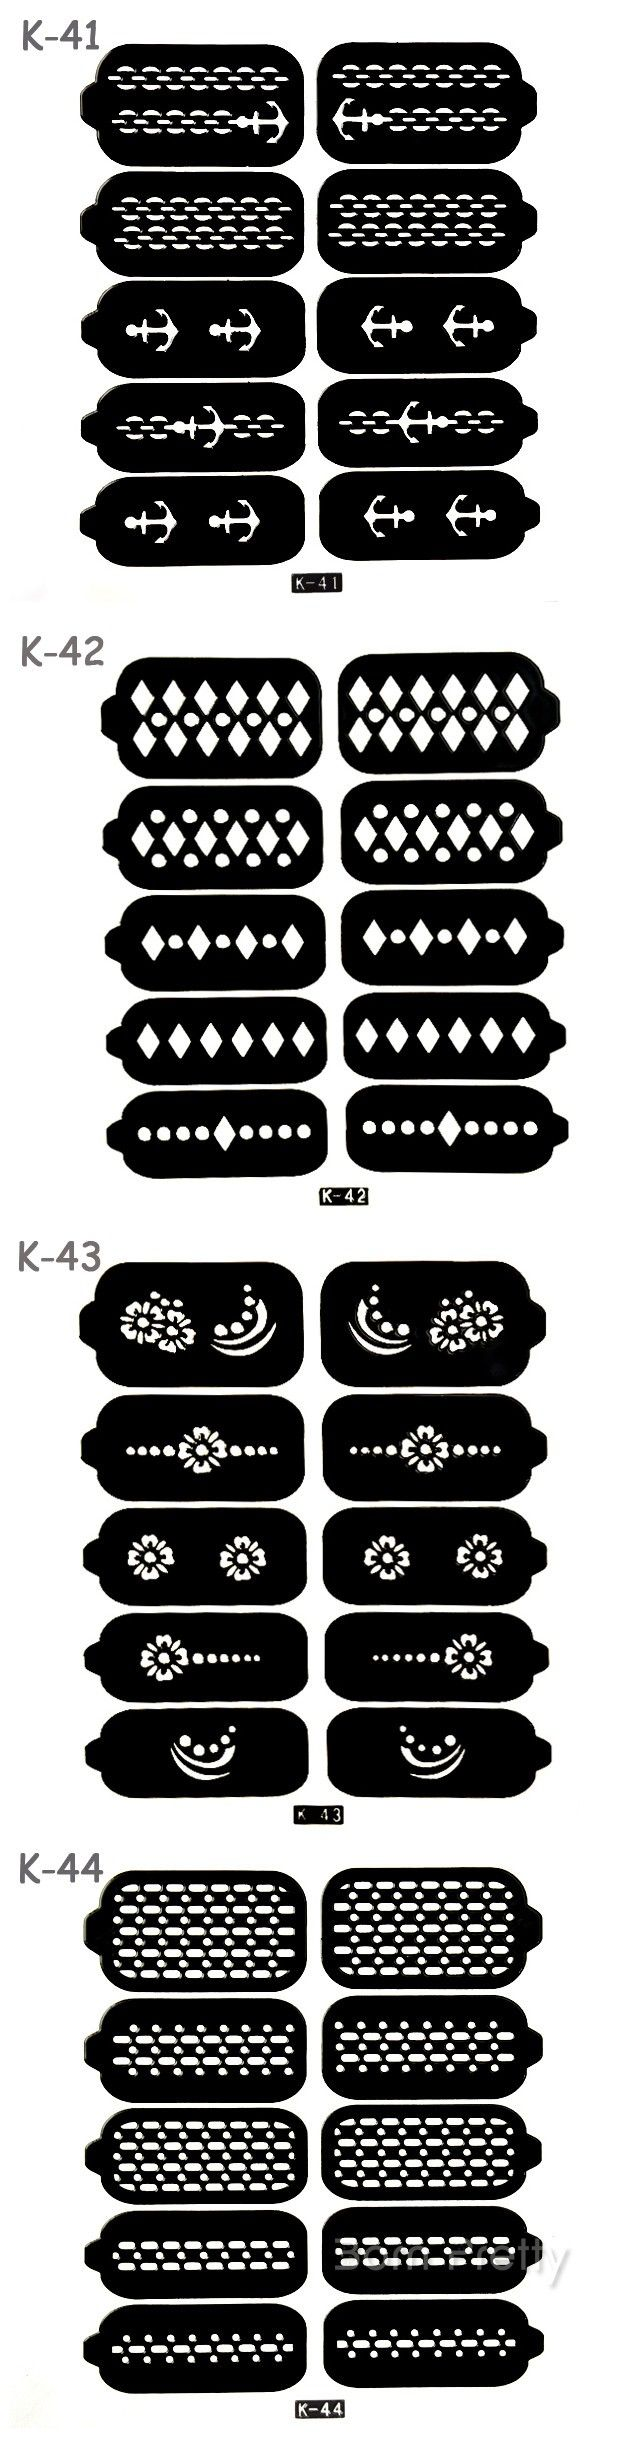 $3.99 10 Tips/Sheet Nail Vinyls Chain Anchor Pattern Nail Stencil Stickers#K41/K42/K43/K44 - BornPrettyStore.com